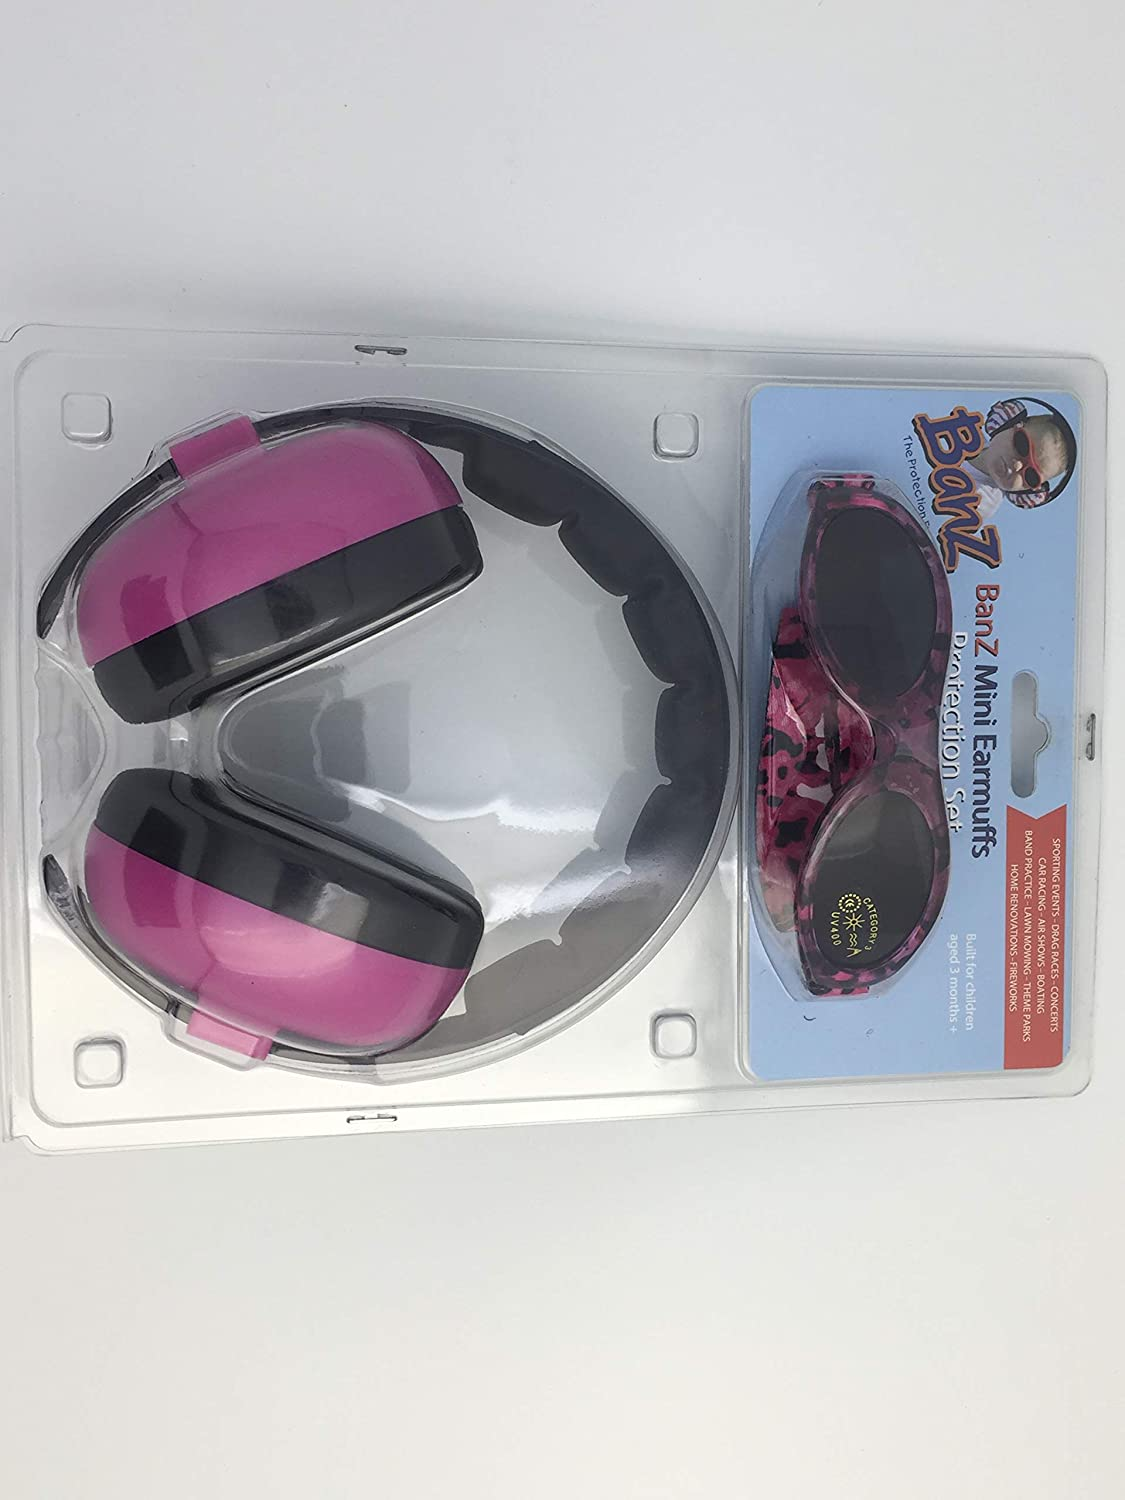 Baby Banz Earmuffs and Infant Hearing Protection and Sunglasses Combo 0-2 Years, Magenta EM019